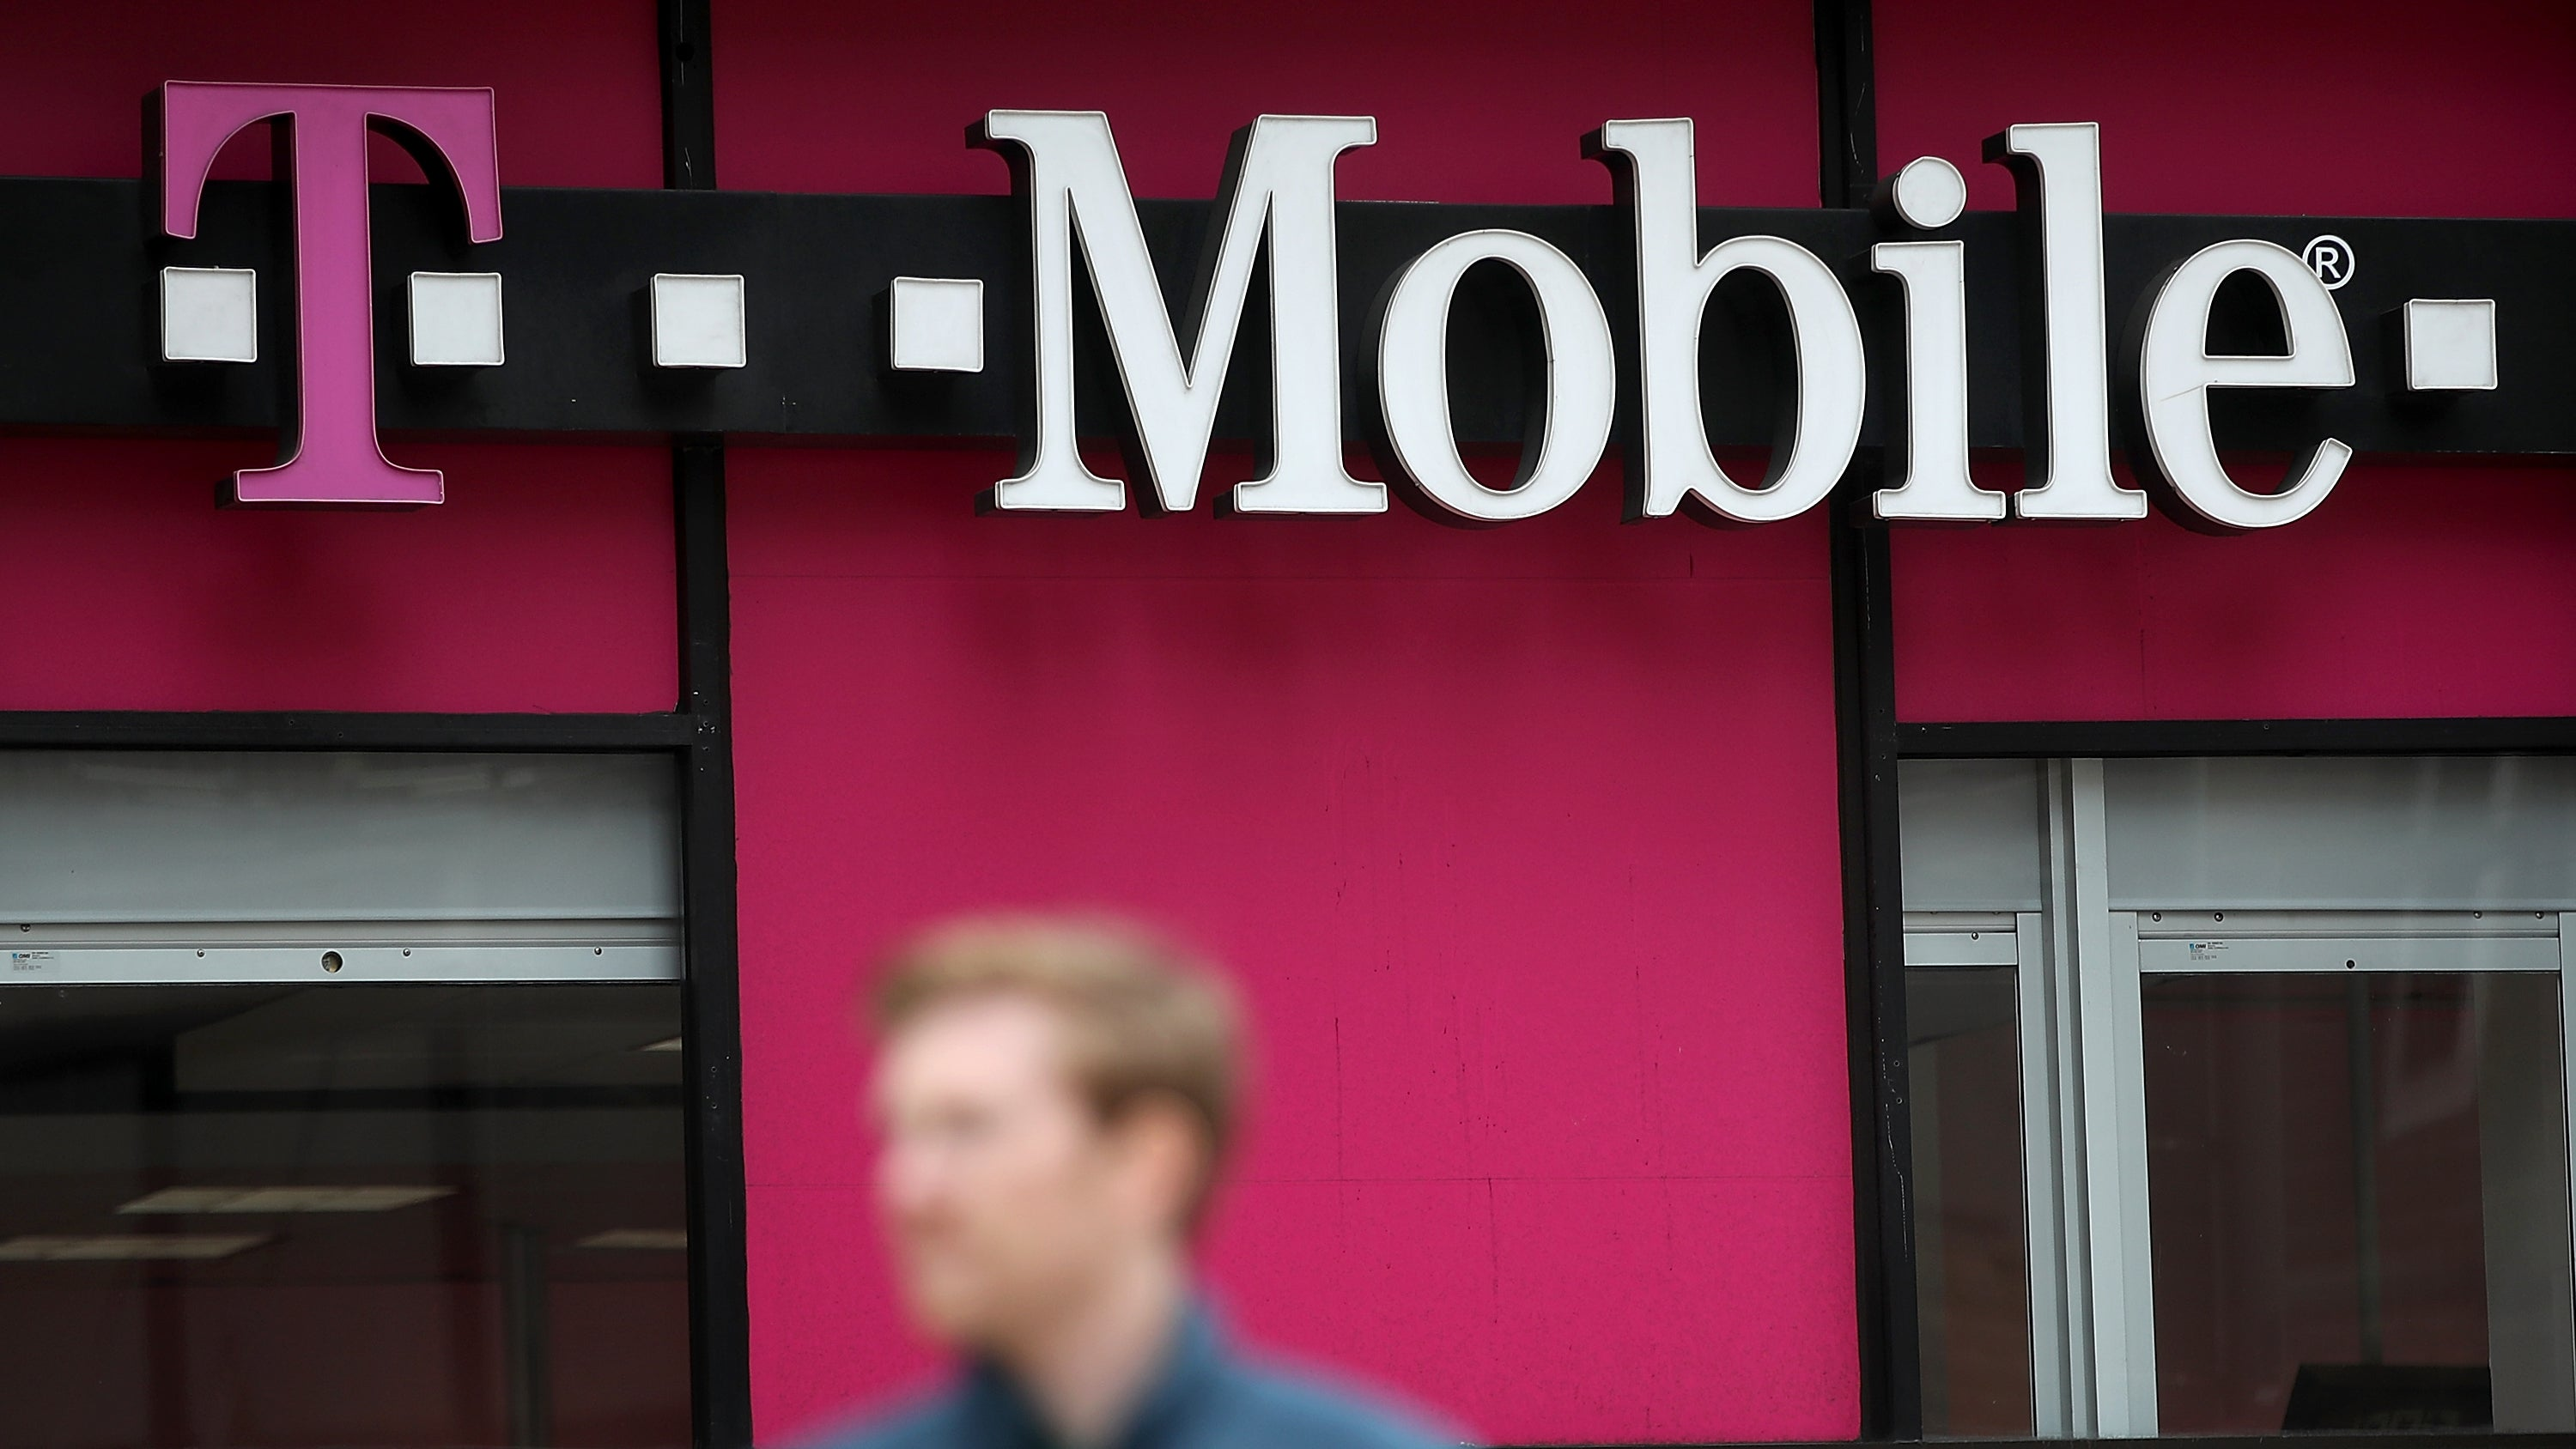 A Bug on T-Mobile's Website Exposed Its Customers' Personal Information